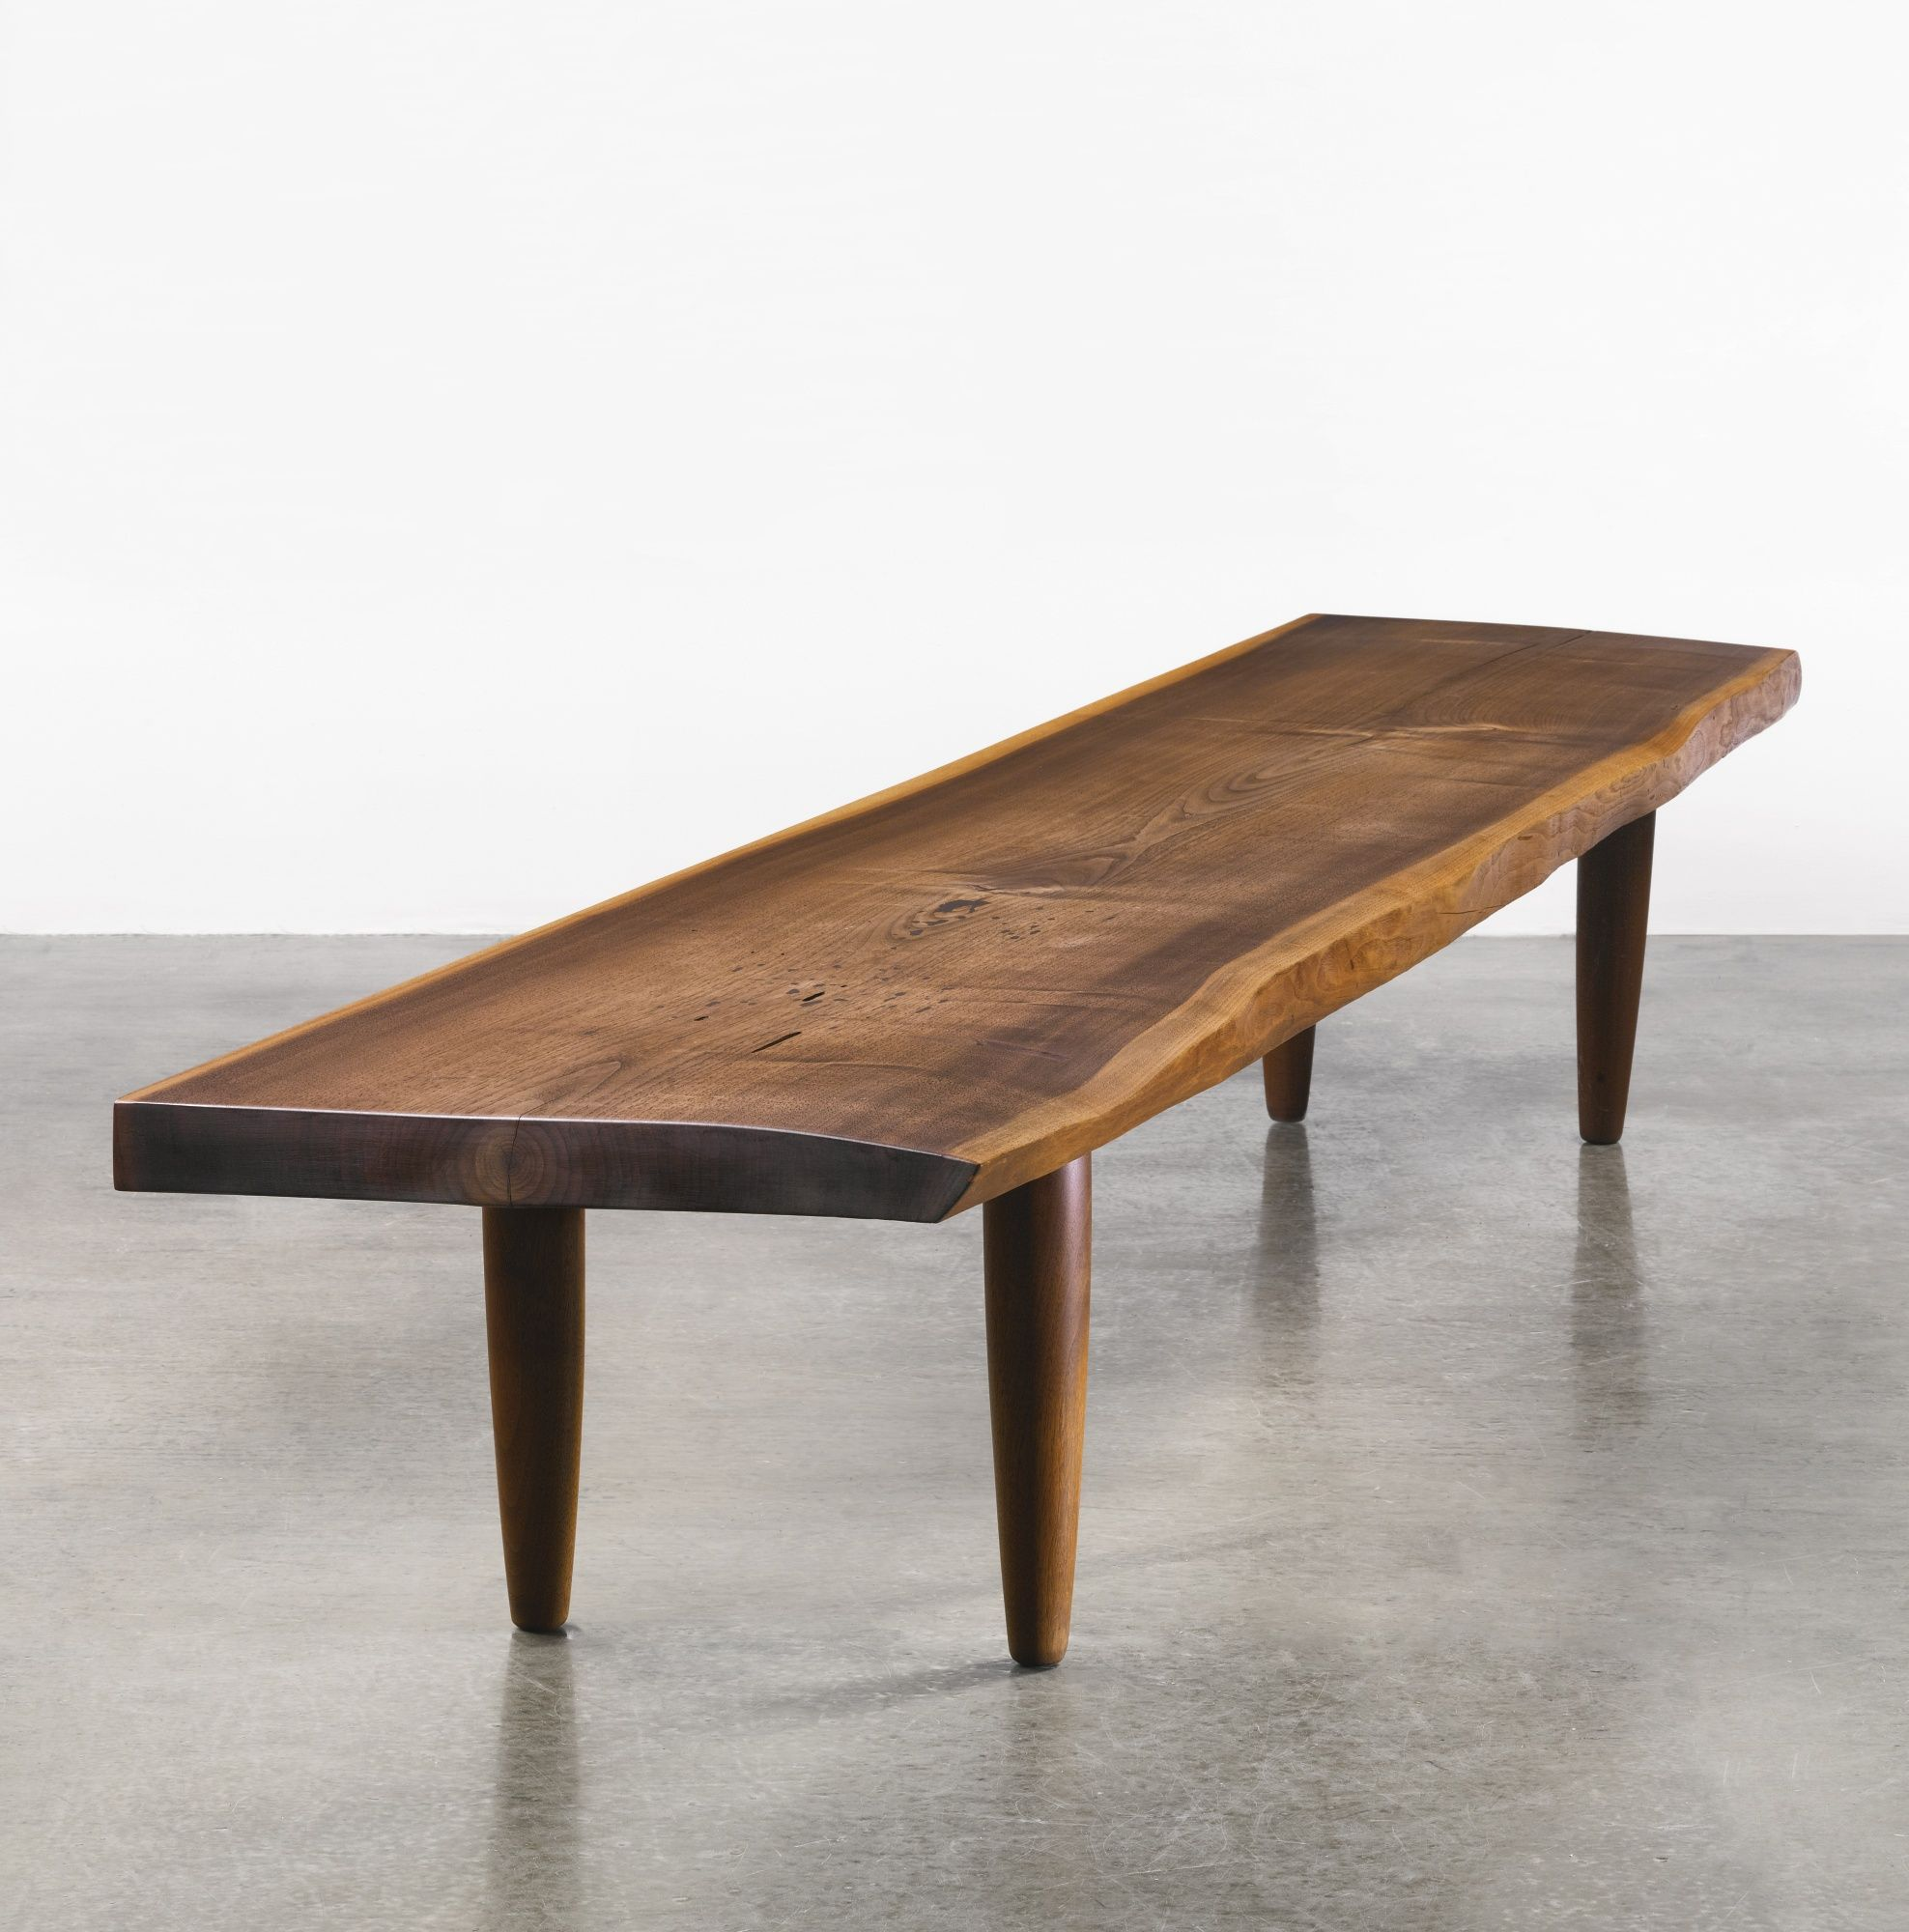 George Nakashima; American Black Walnut and East Indian Rosewood Bench, c1950.